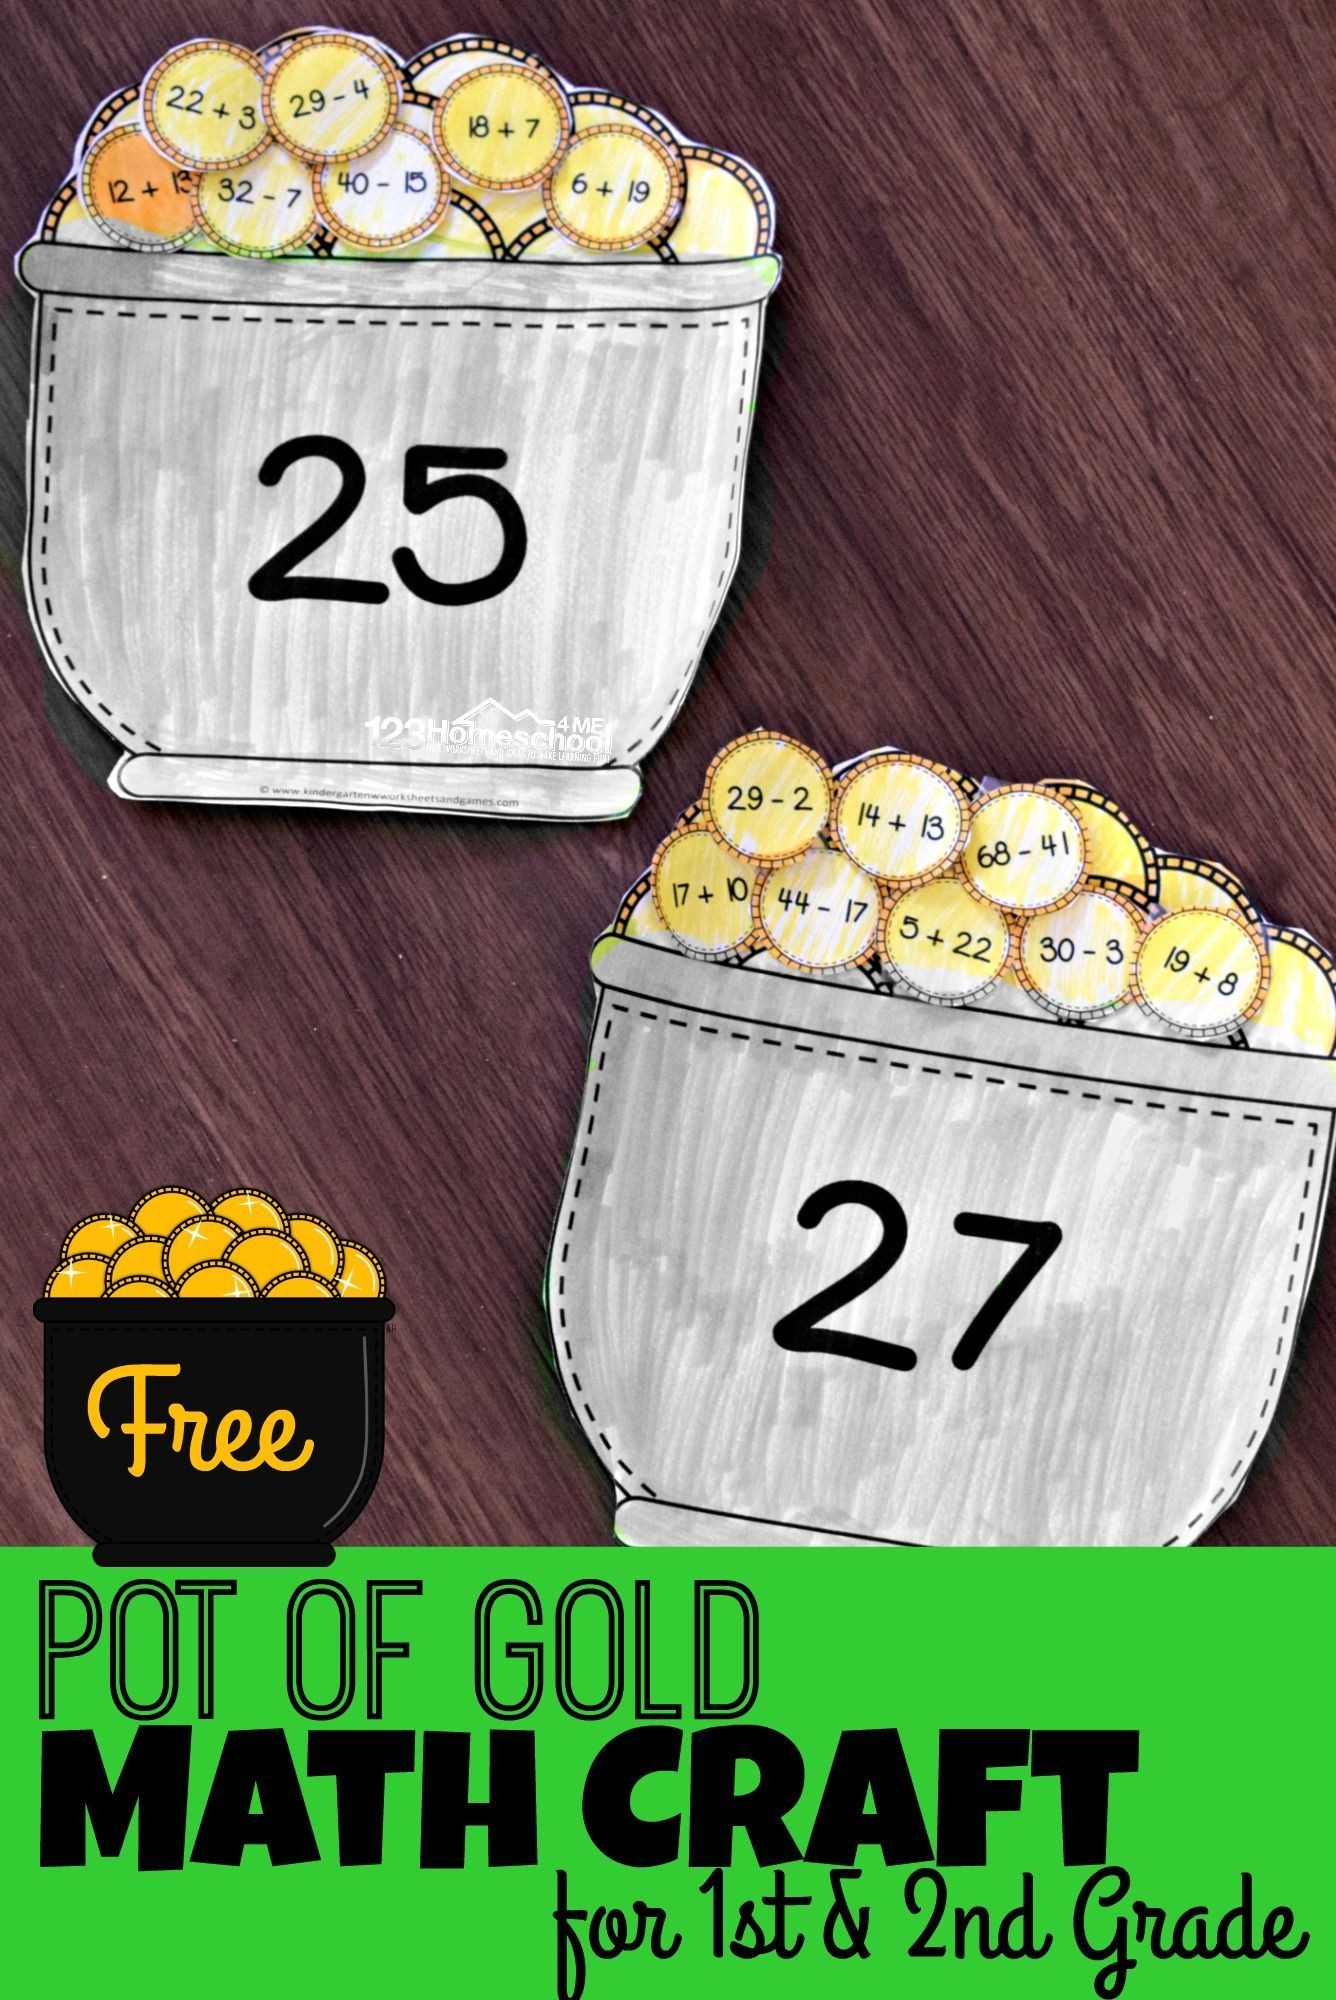 Free Pot Of Gold Math Craft For 1st And 2nd Grade